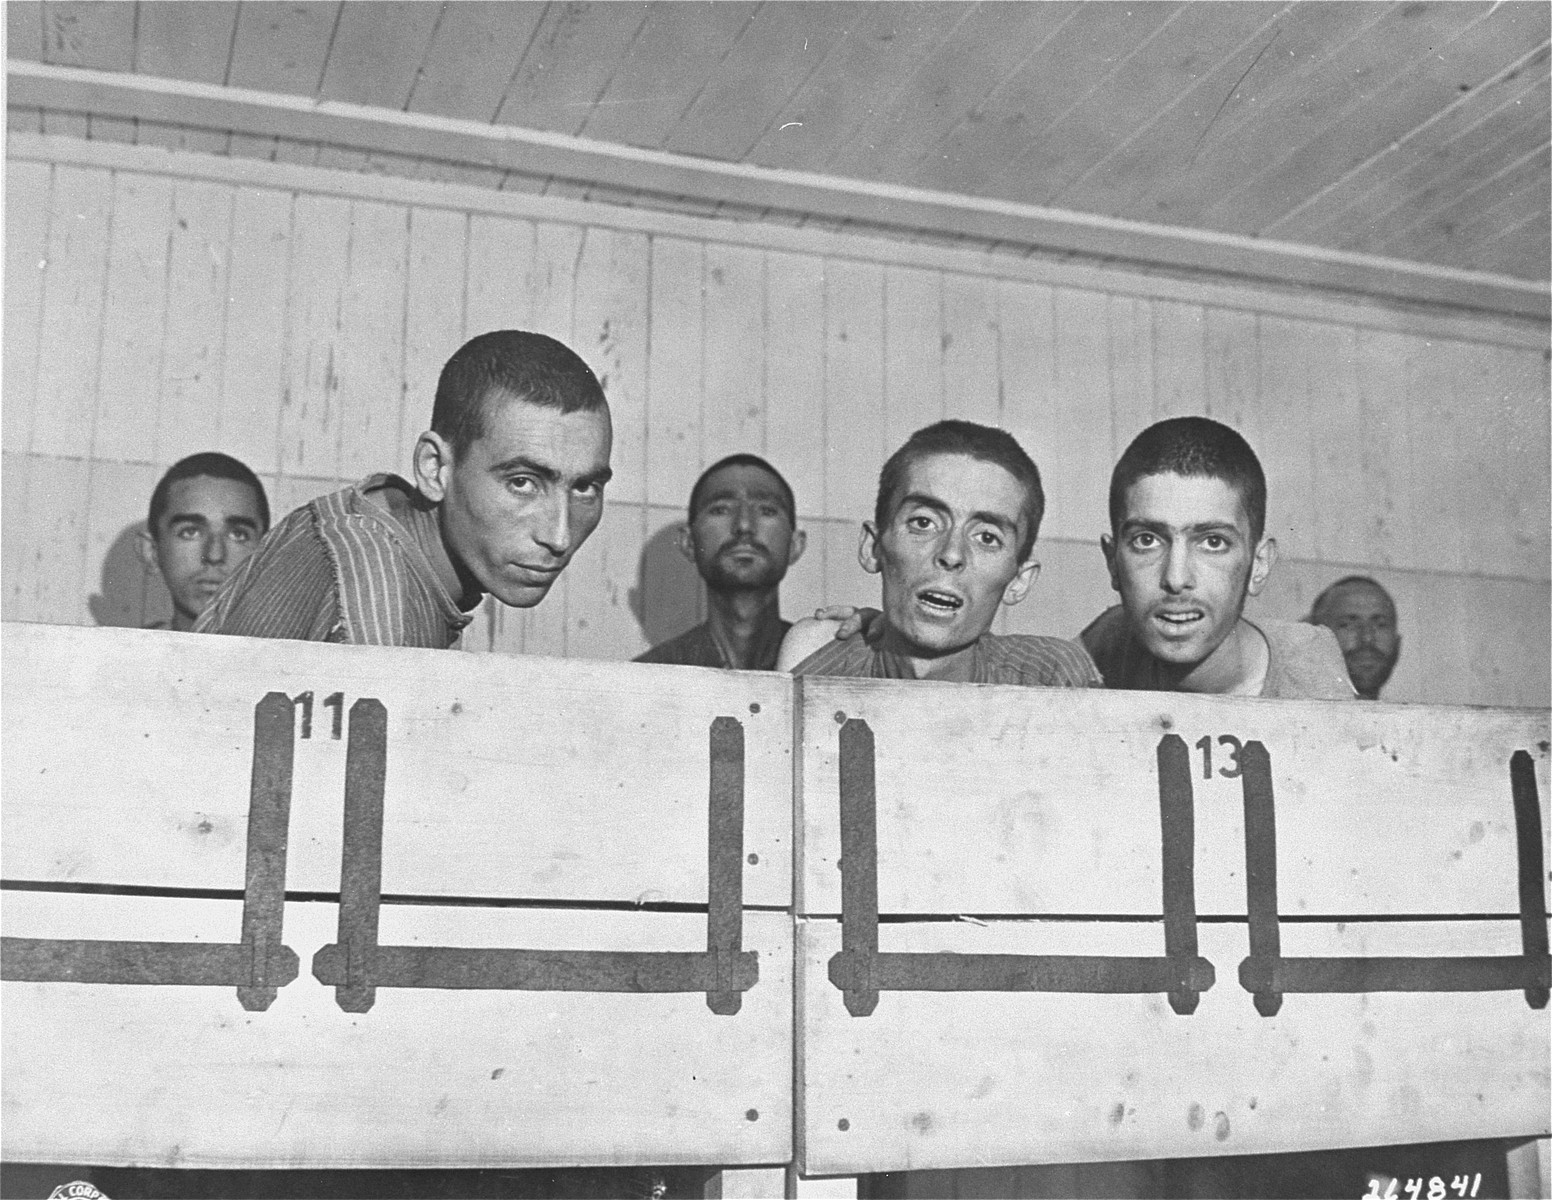 Survivors look out from the upper tier of a bunk in the infirmary barracks for Jewish prisoners in the Ebensee concentration camp.